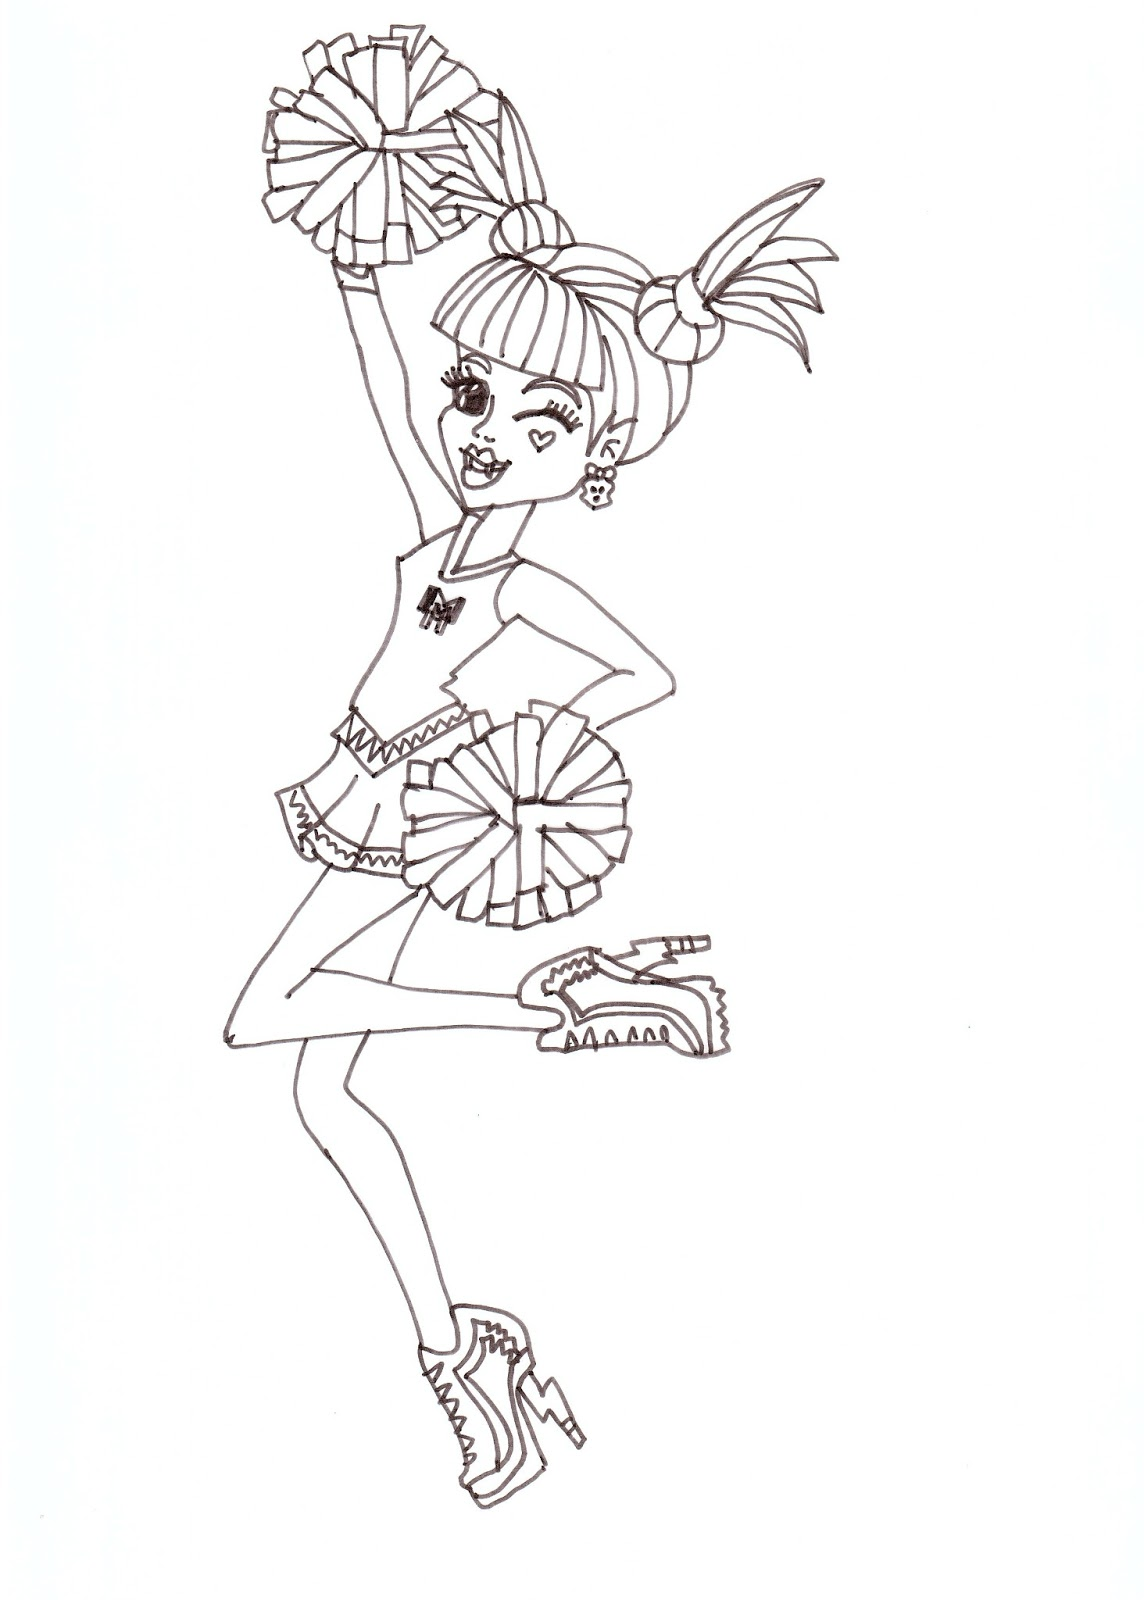 Free Printable Monster High Coloring Pages: Draculaura Fearleading ...